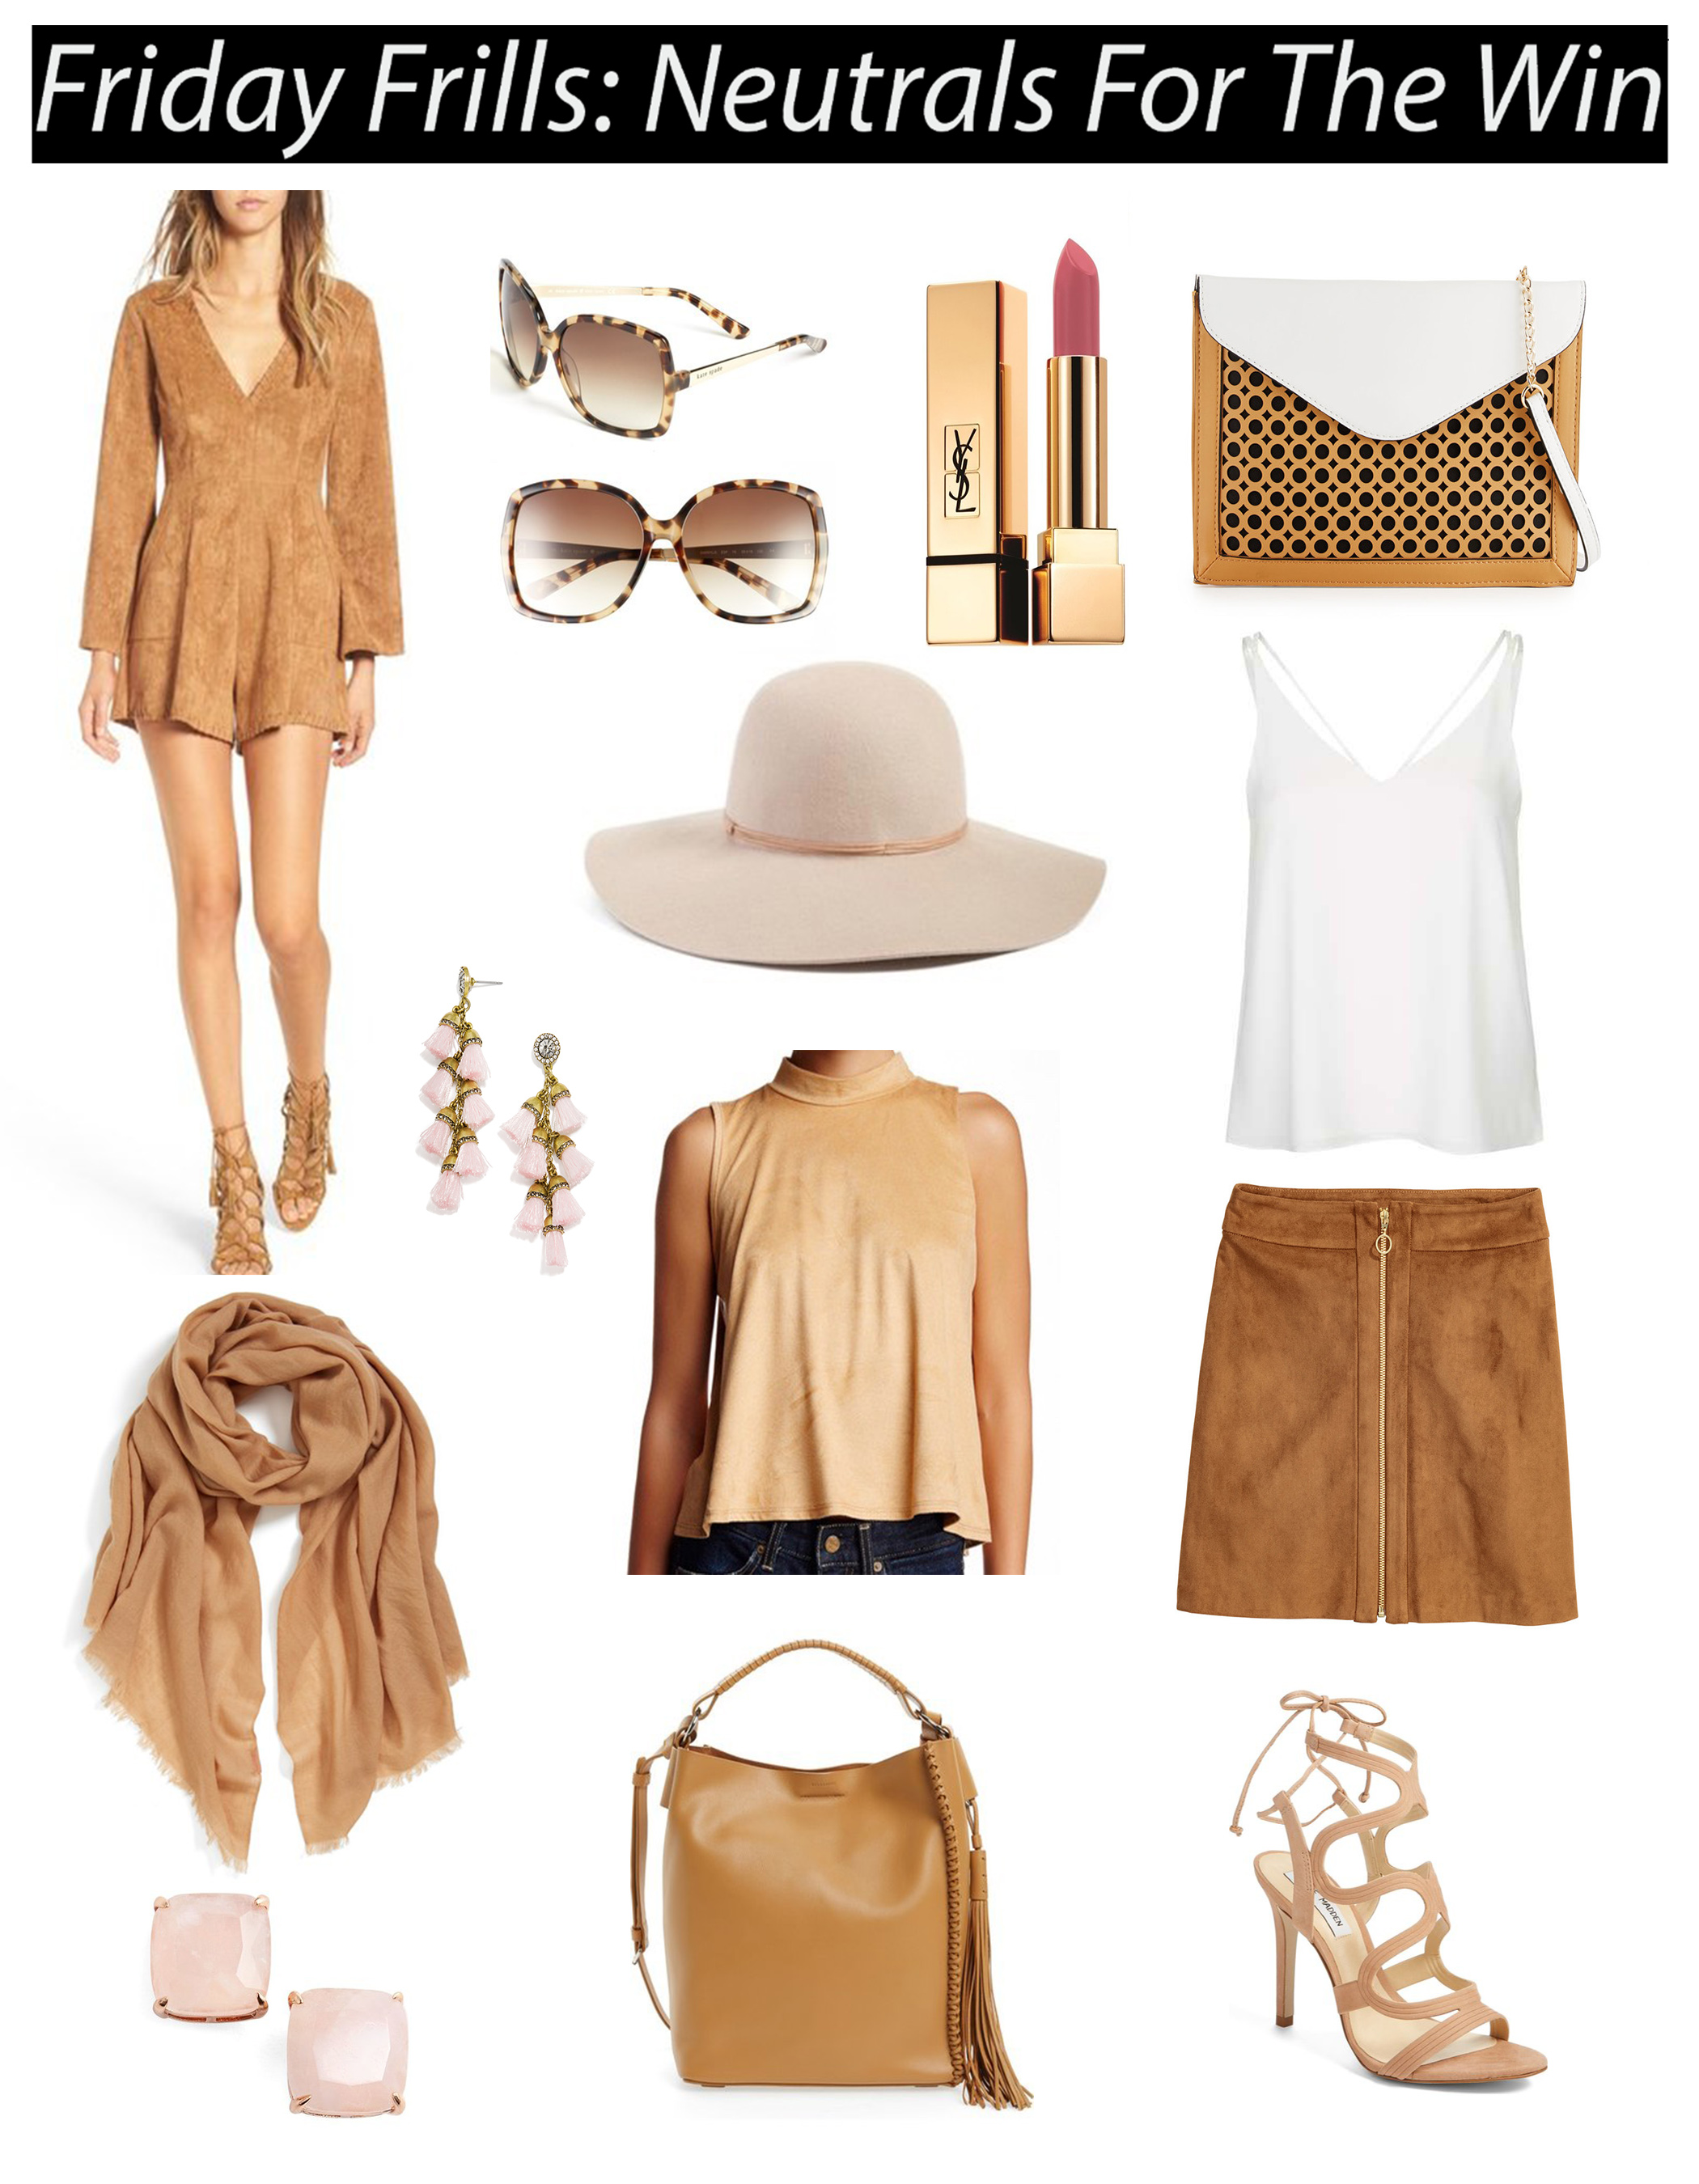 Nuetrals // Camel Outfit Inspiration // Transitioning into Fall